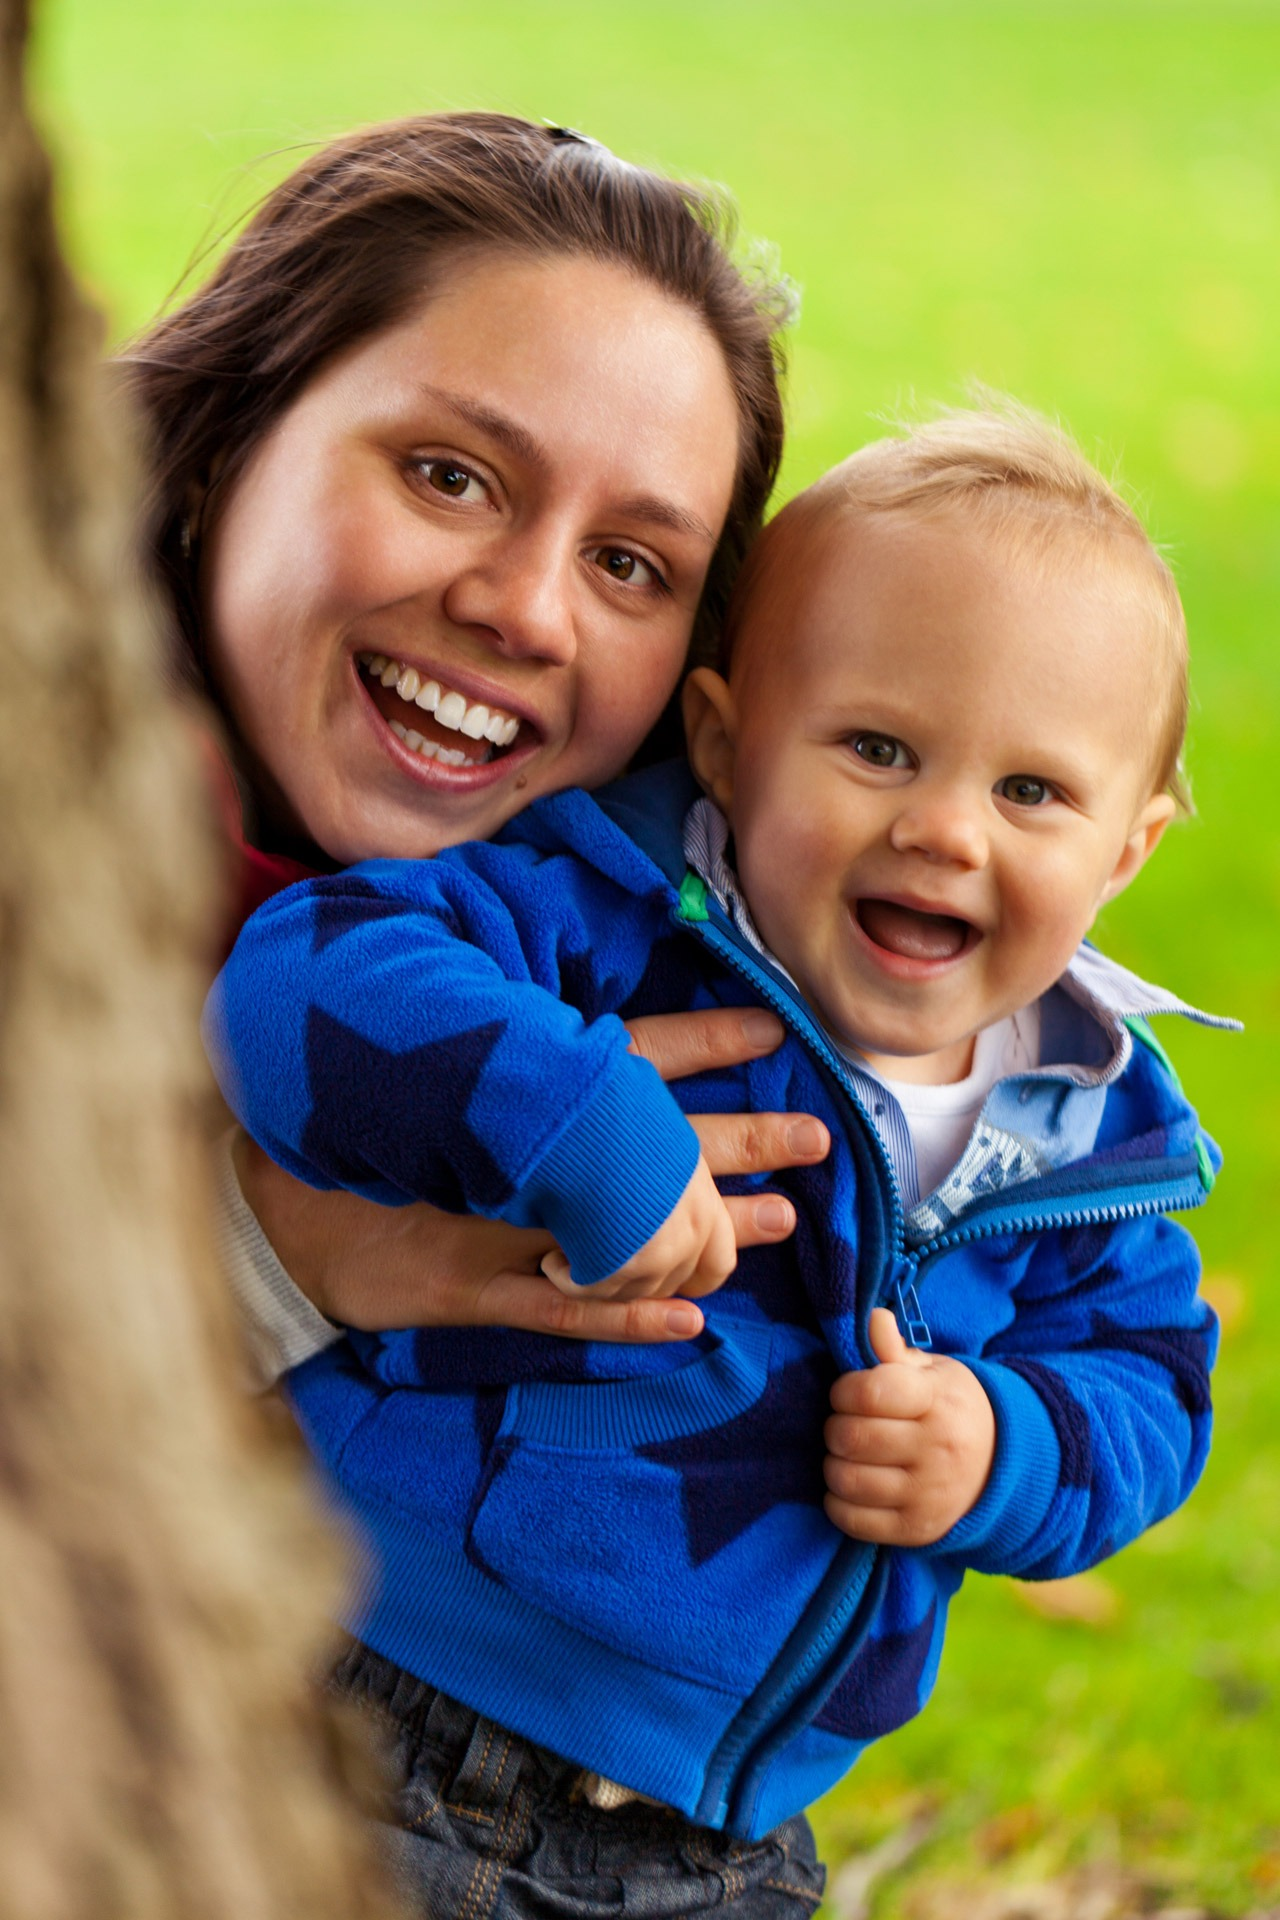 mom_and_baby_boy_in_park_208181